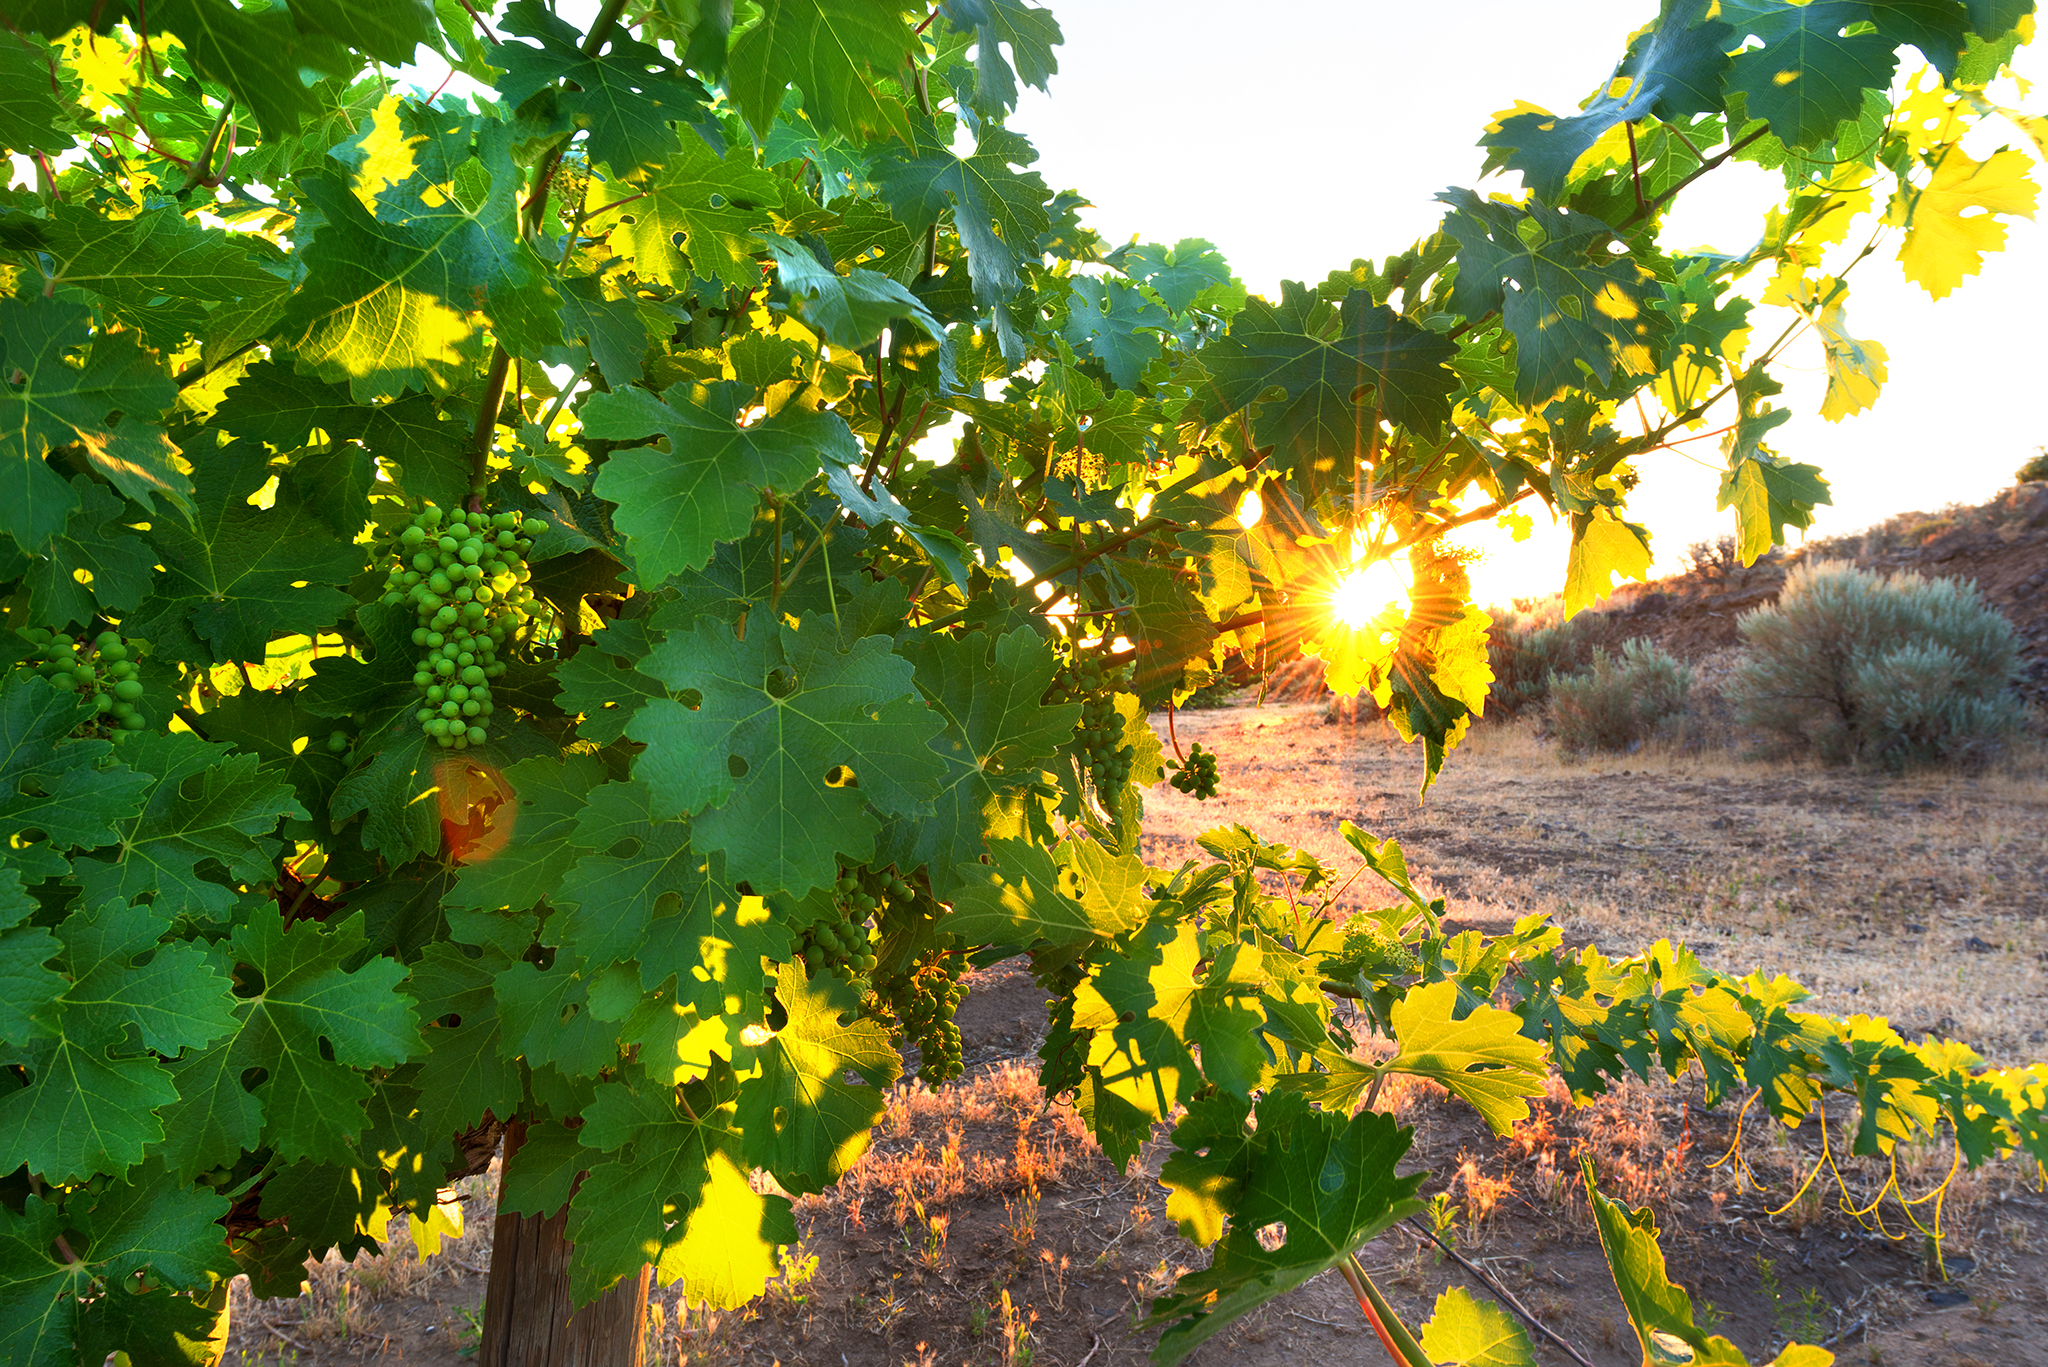 Grapevines at dawn - Washington - Article by WineGeographic.com